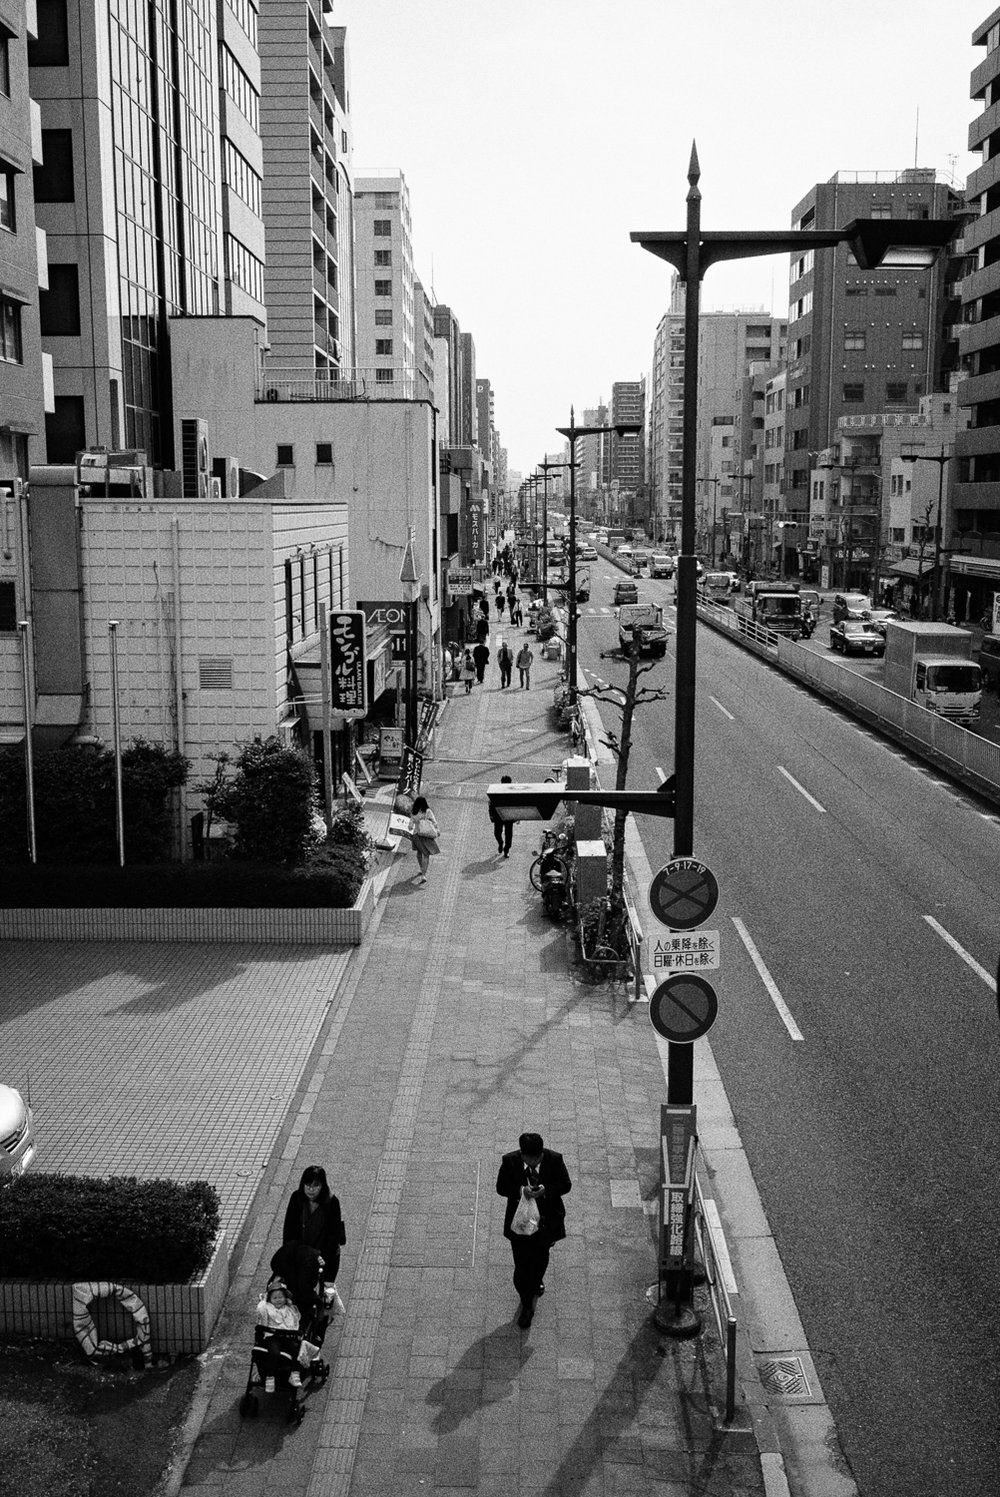 20170417_Japan_092921_Edit-Nick-Bedford,-Photographer-Black and White, Japan, Leica M Typ 240, Ryogoku, Tokyo, Voigtlander 35mm F1.7 Ultron Asph, VSCO Film, West End Camera Club.jpg